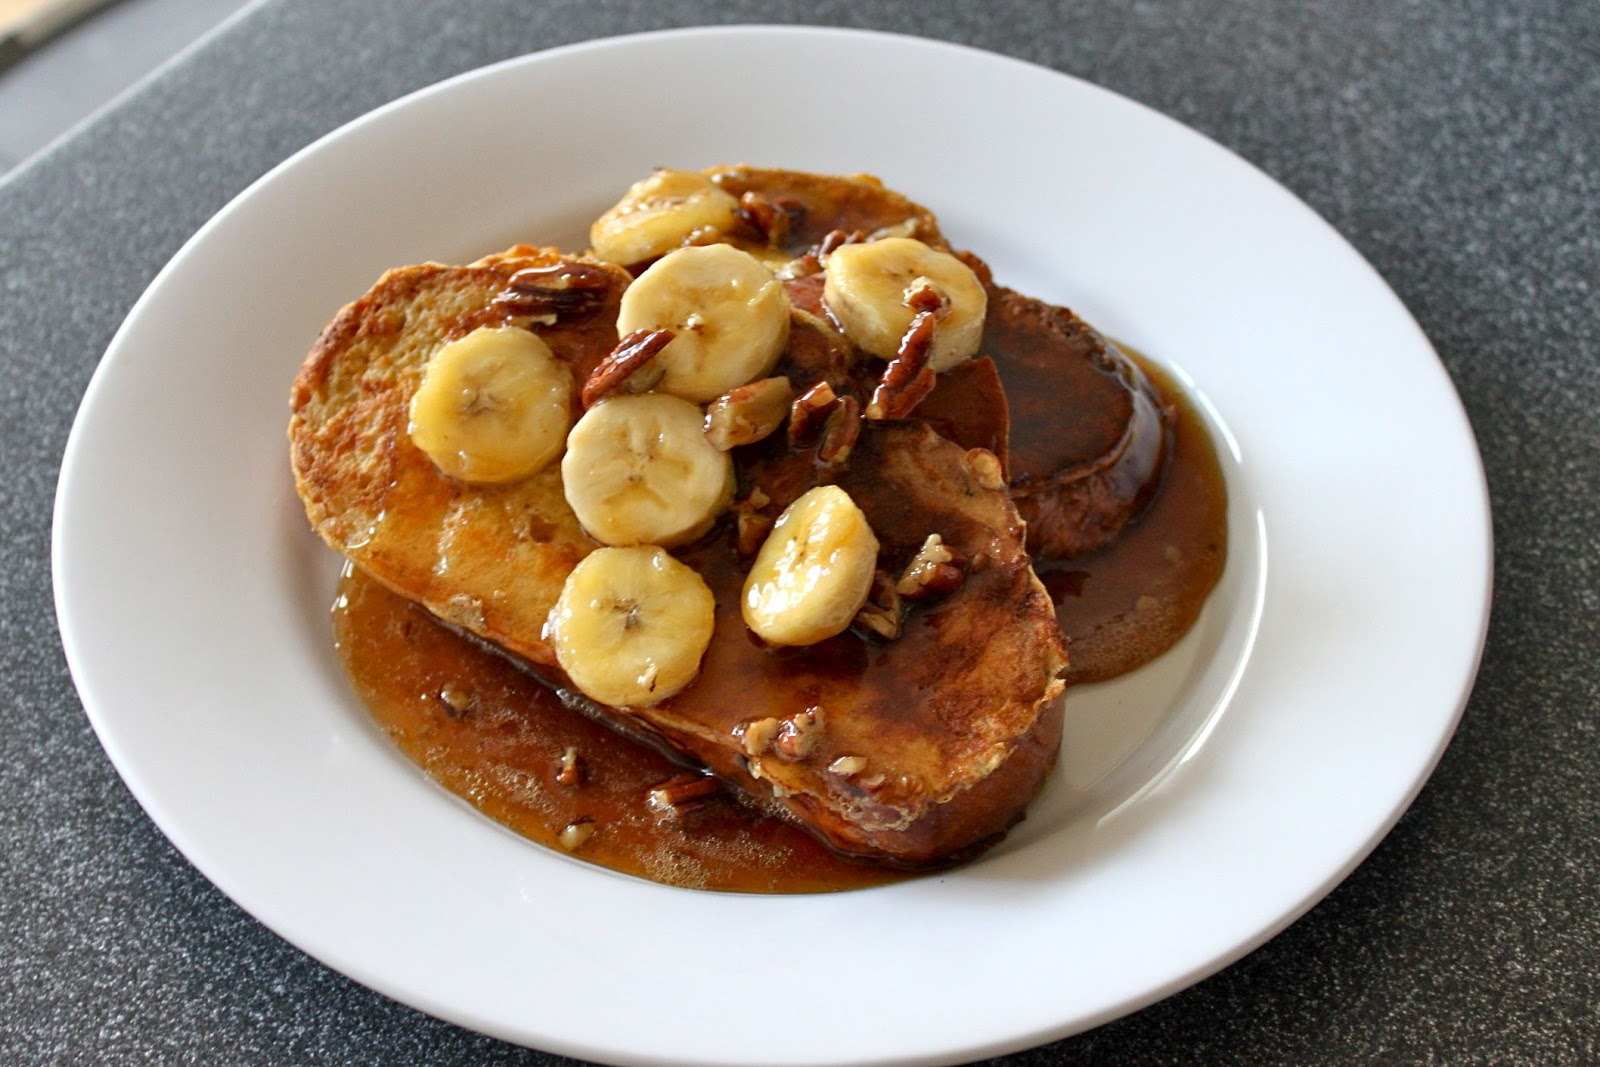 ... french banana s foster brioche french bananas foster french toast